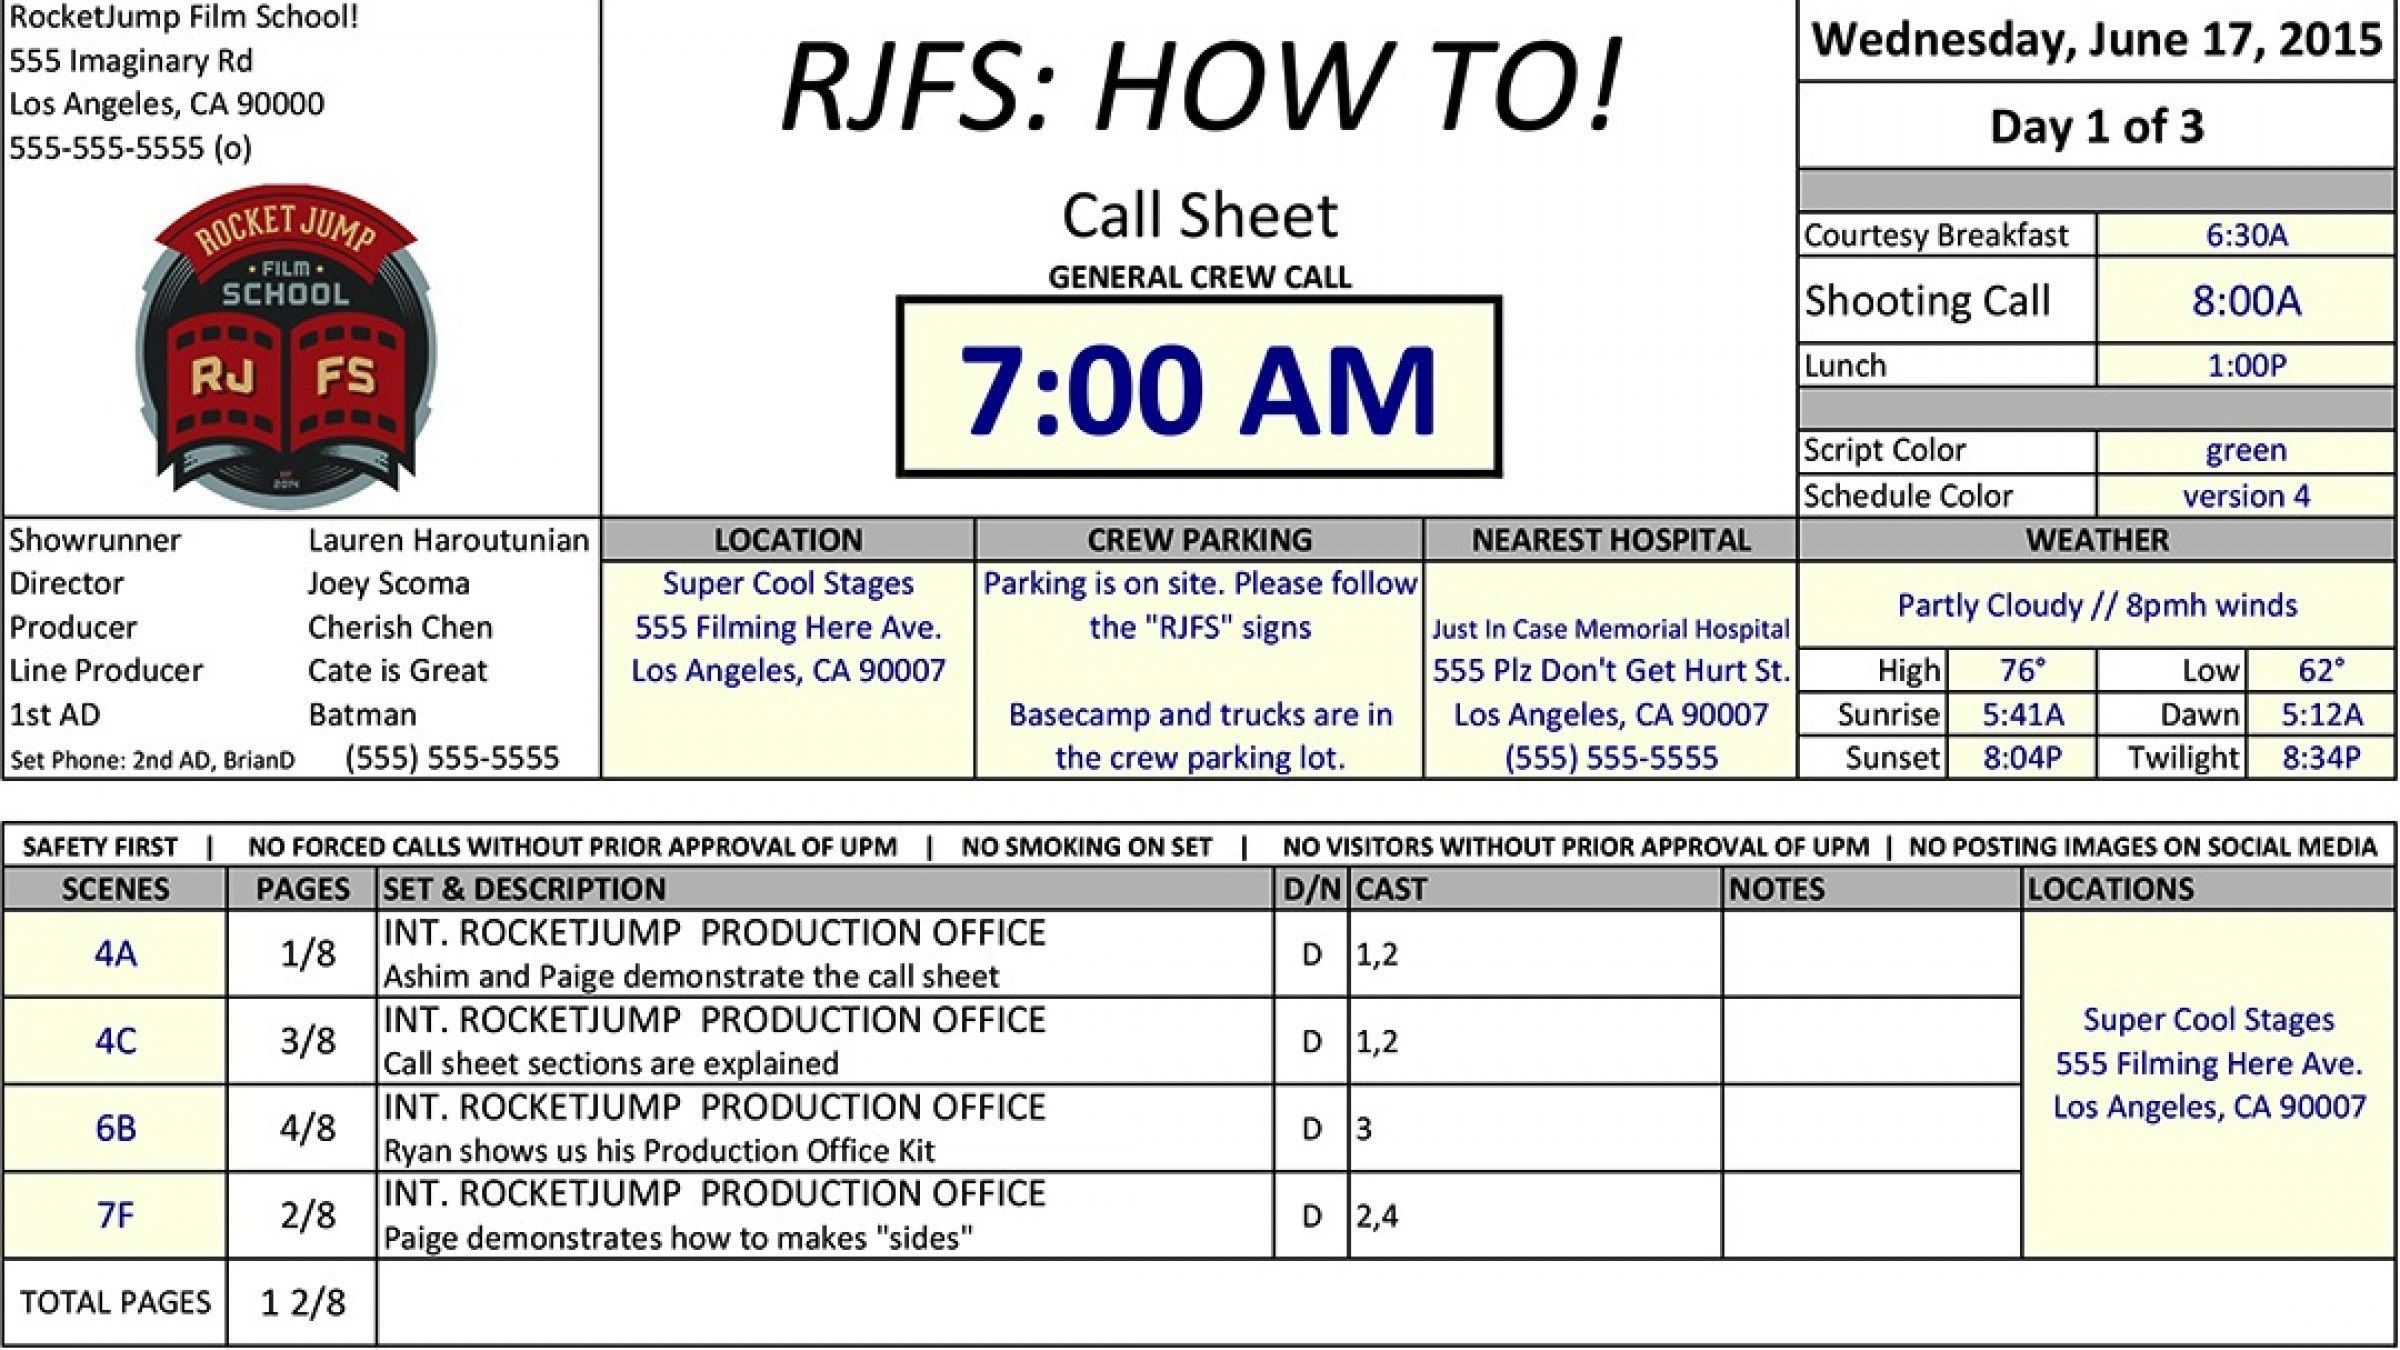 002 Imposing Film Call Sheet Template Download High Definition Full